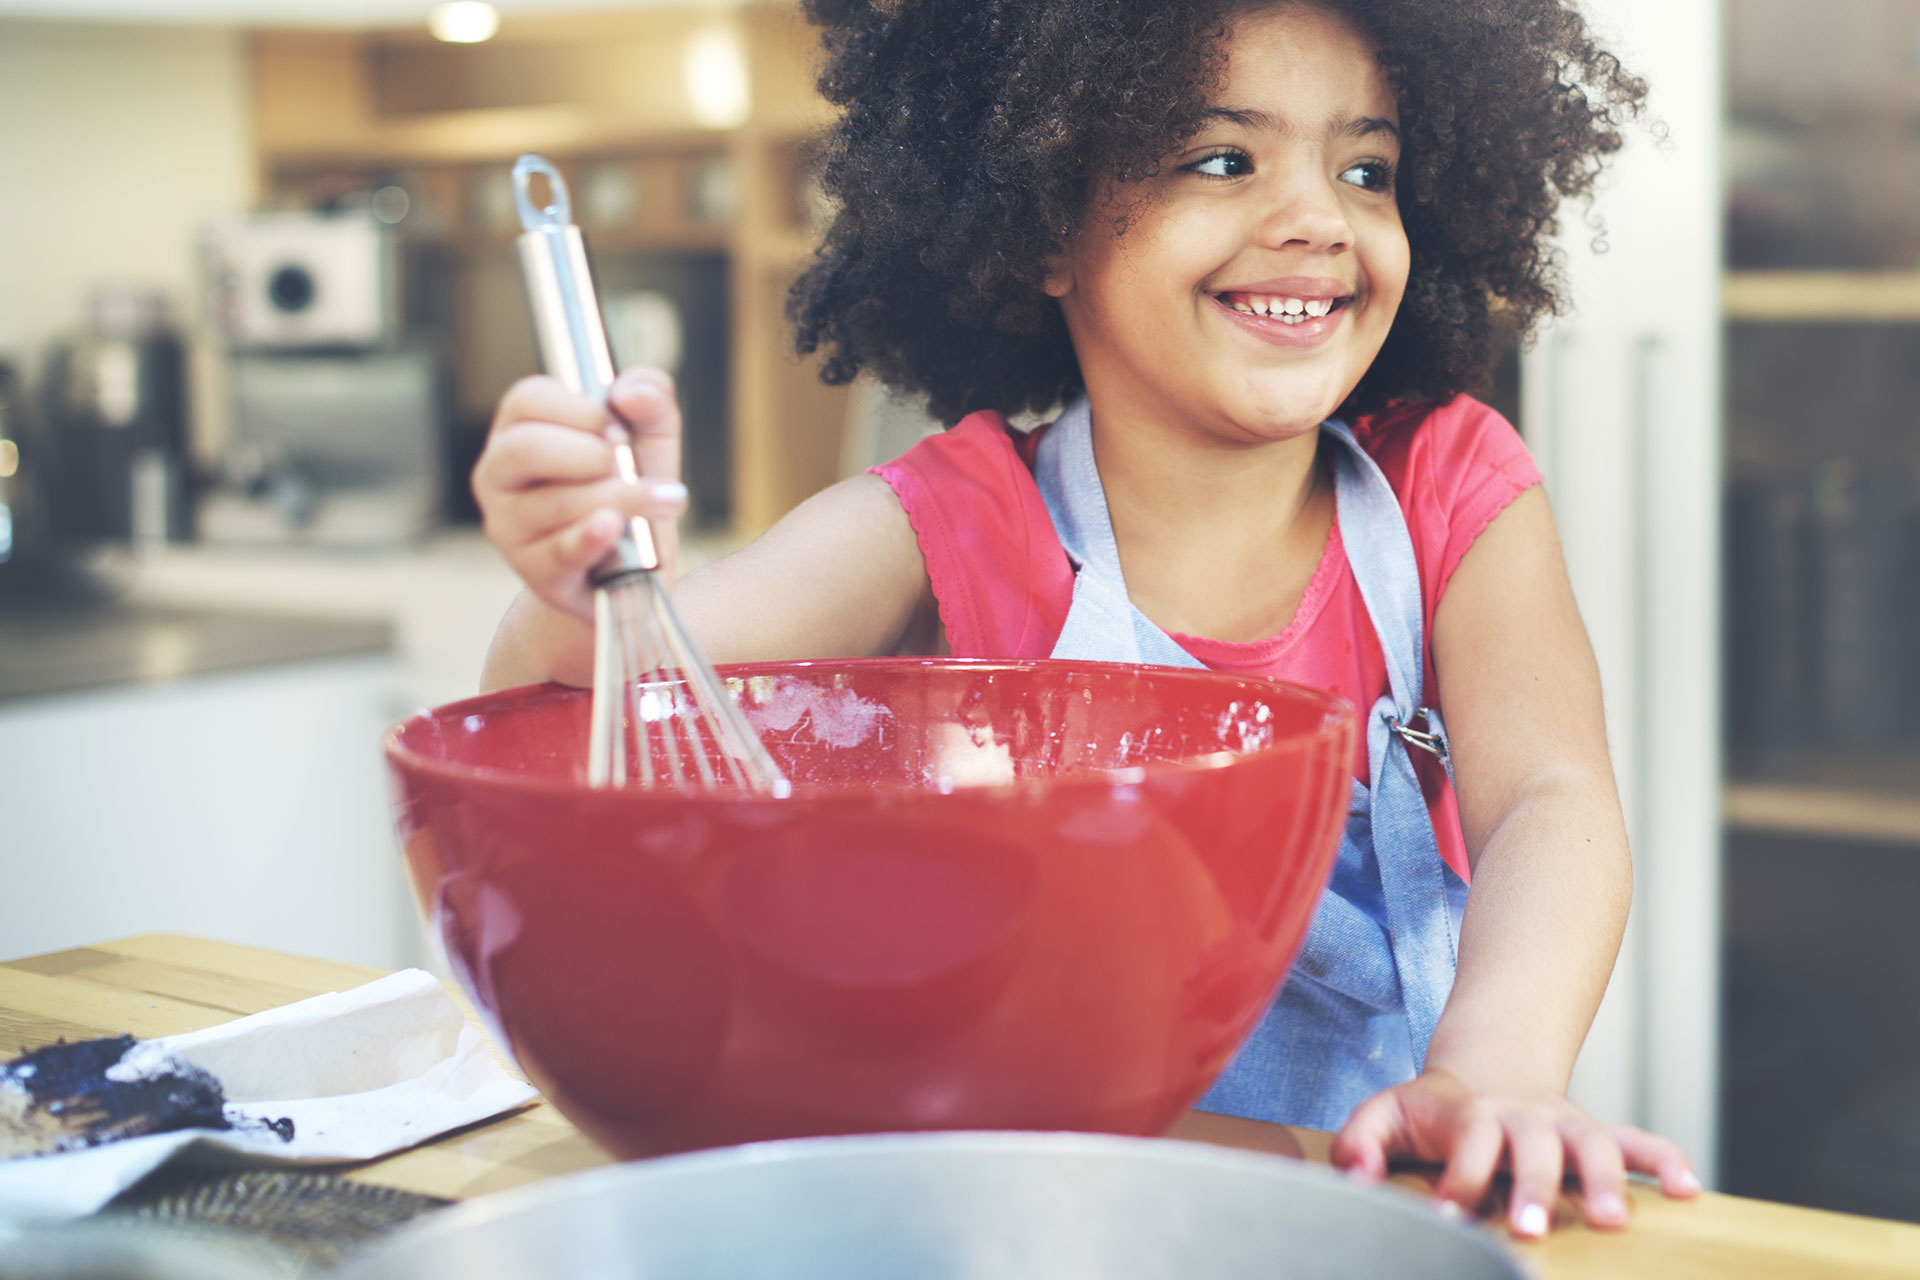 Little Girl Mixing Food; Courtesy of Rawpixel.com/Shutterstock.com